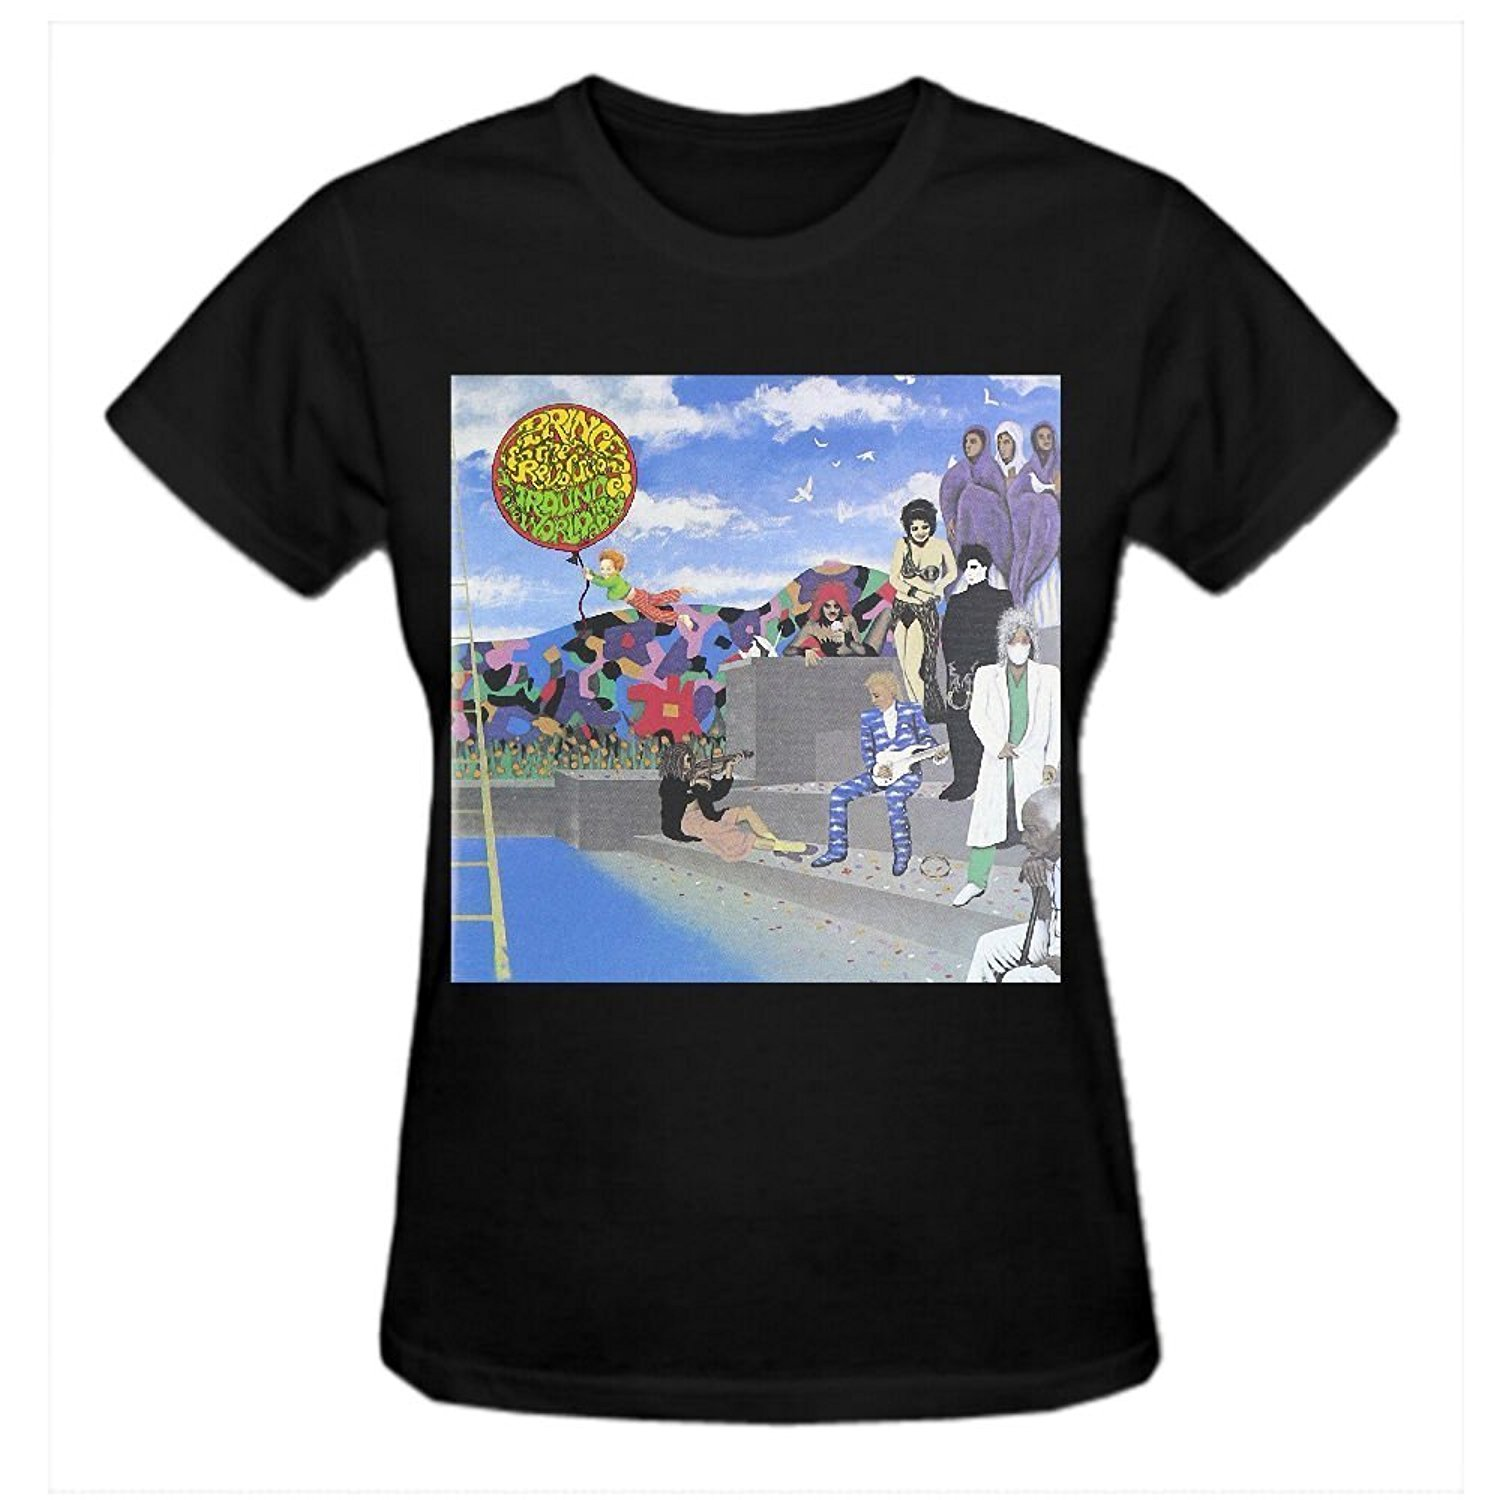 Design your own t-shirt for cheap price - Cheap Price For Premium Fitted Quality Tee Shirts Around The World In A Day Prince Women T Shirts O Neck Summer Design Your Own T Shirt Online Cheap Price